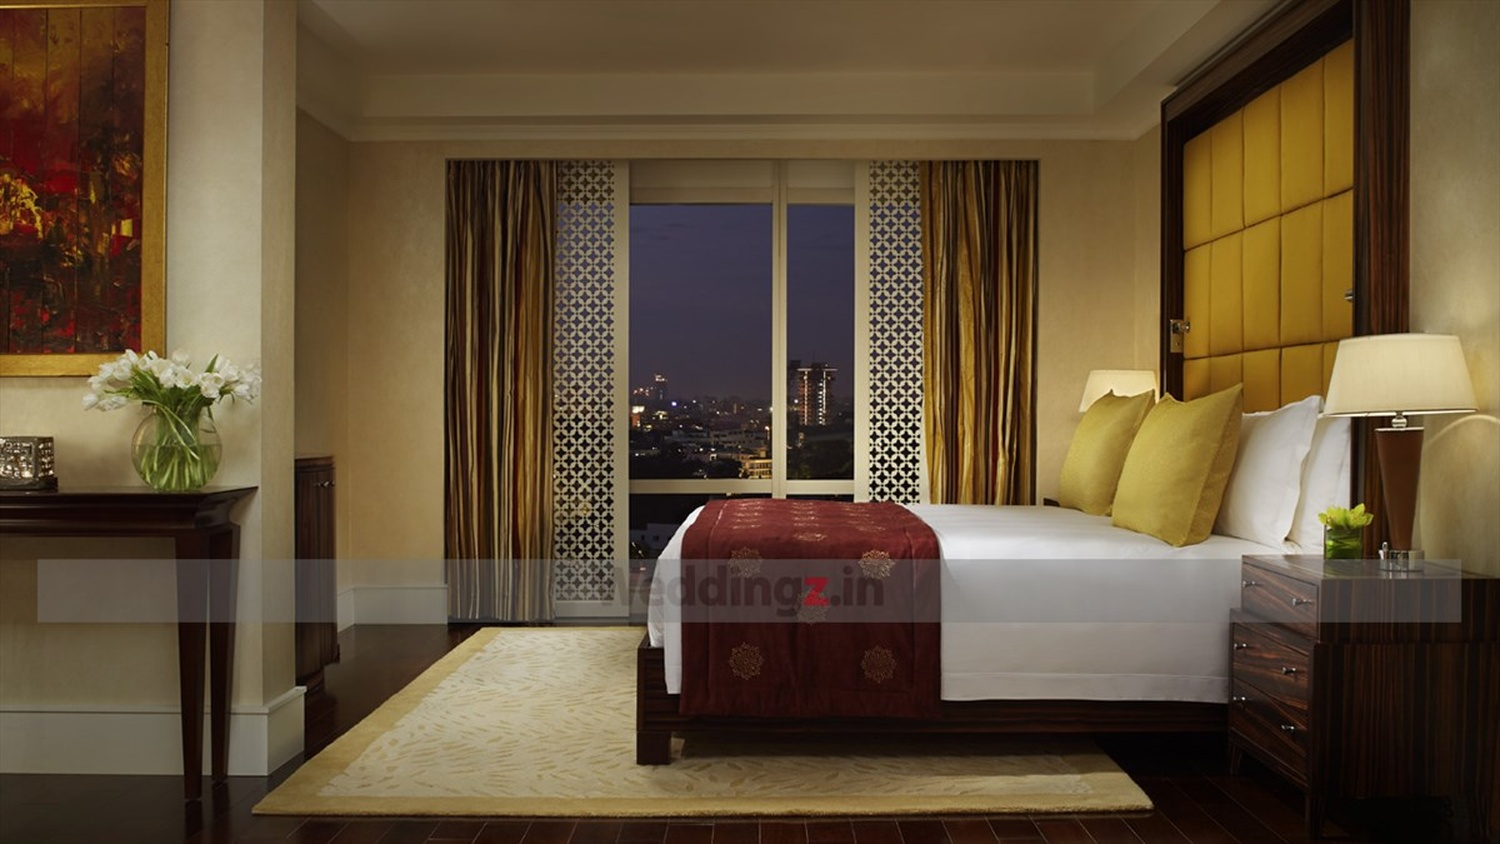 Ritz Carlton Hotel Residency Road Bangalore Banquet Hall Voucher The Seoul Overview